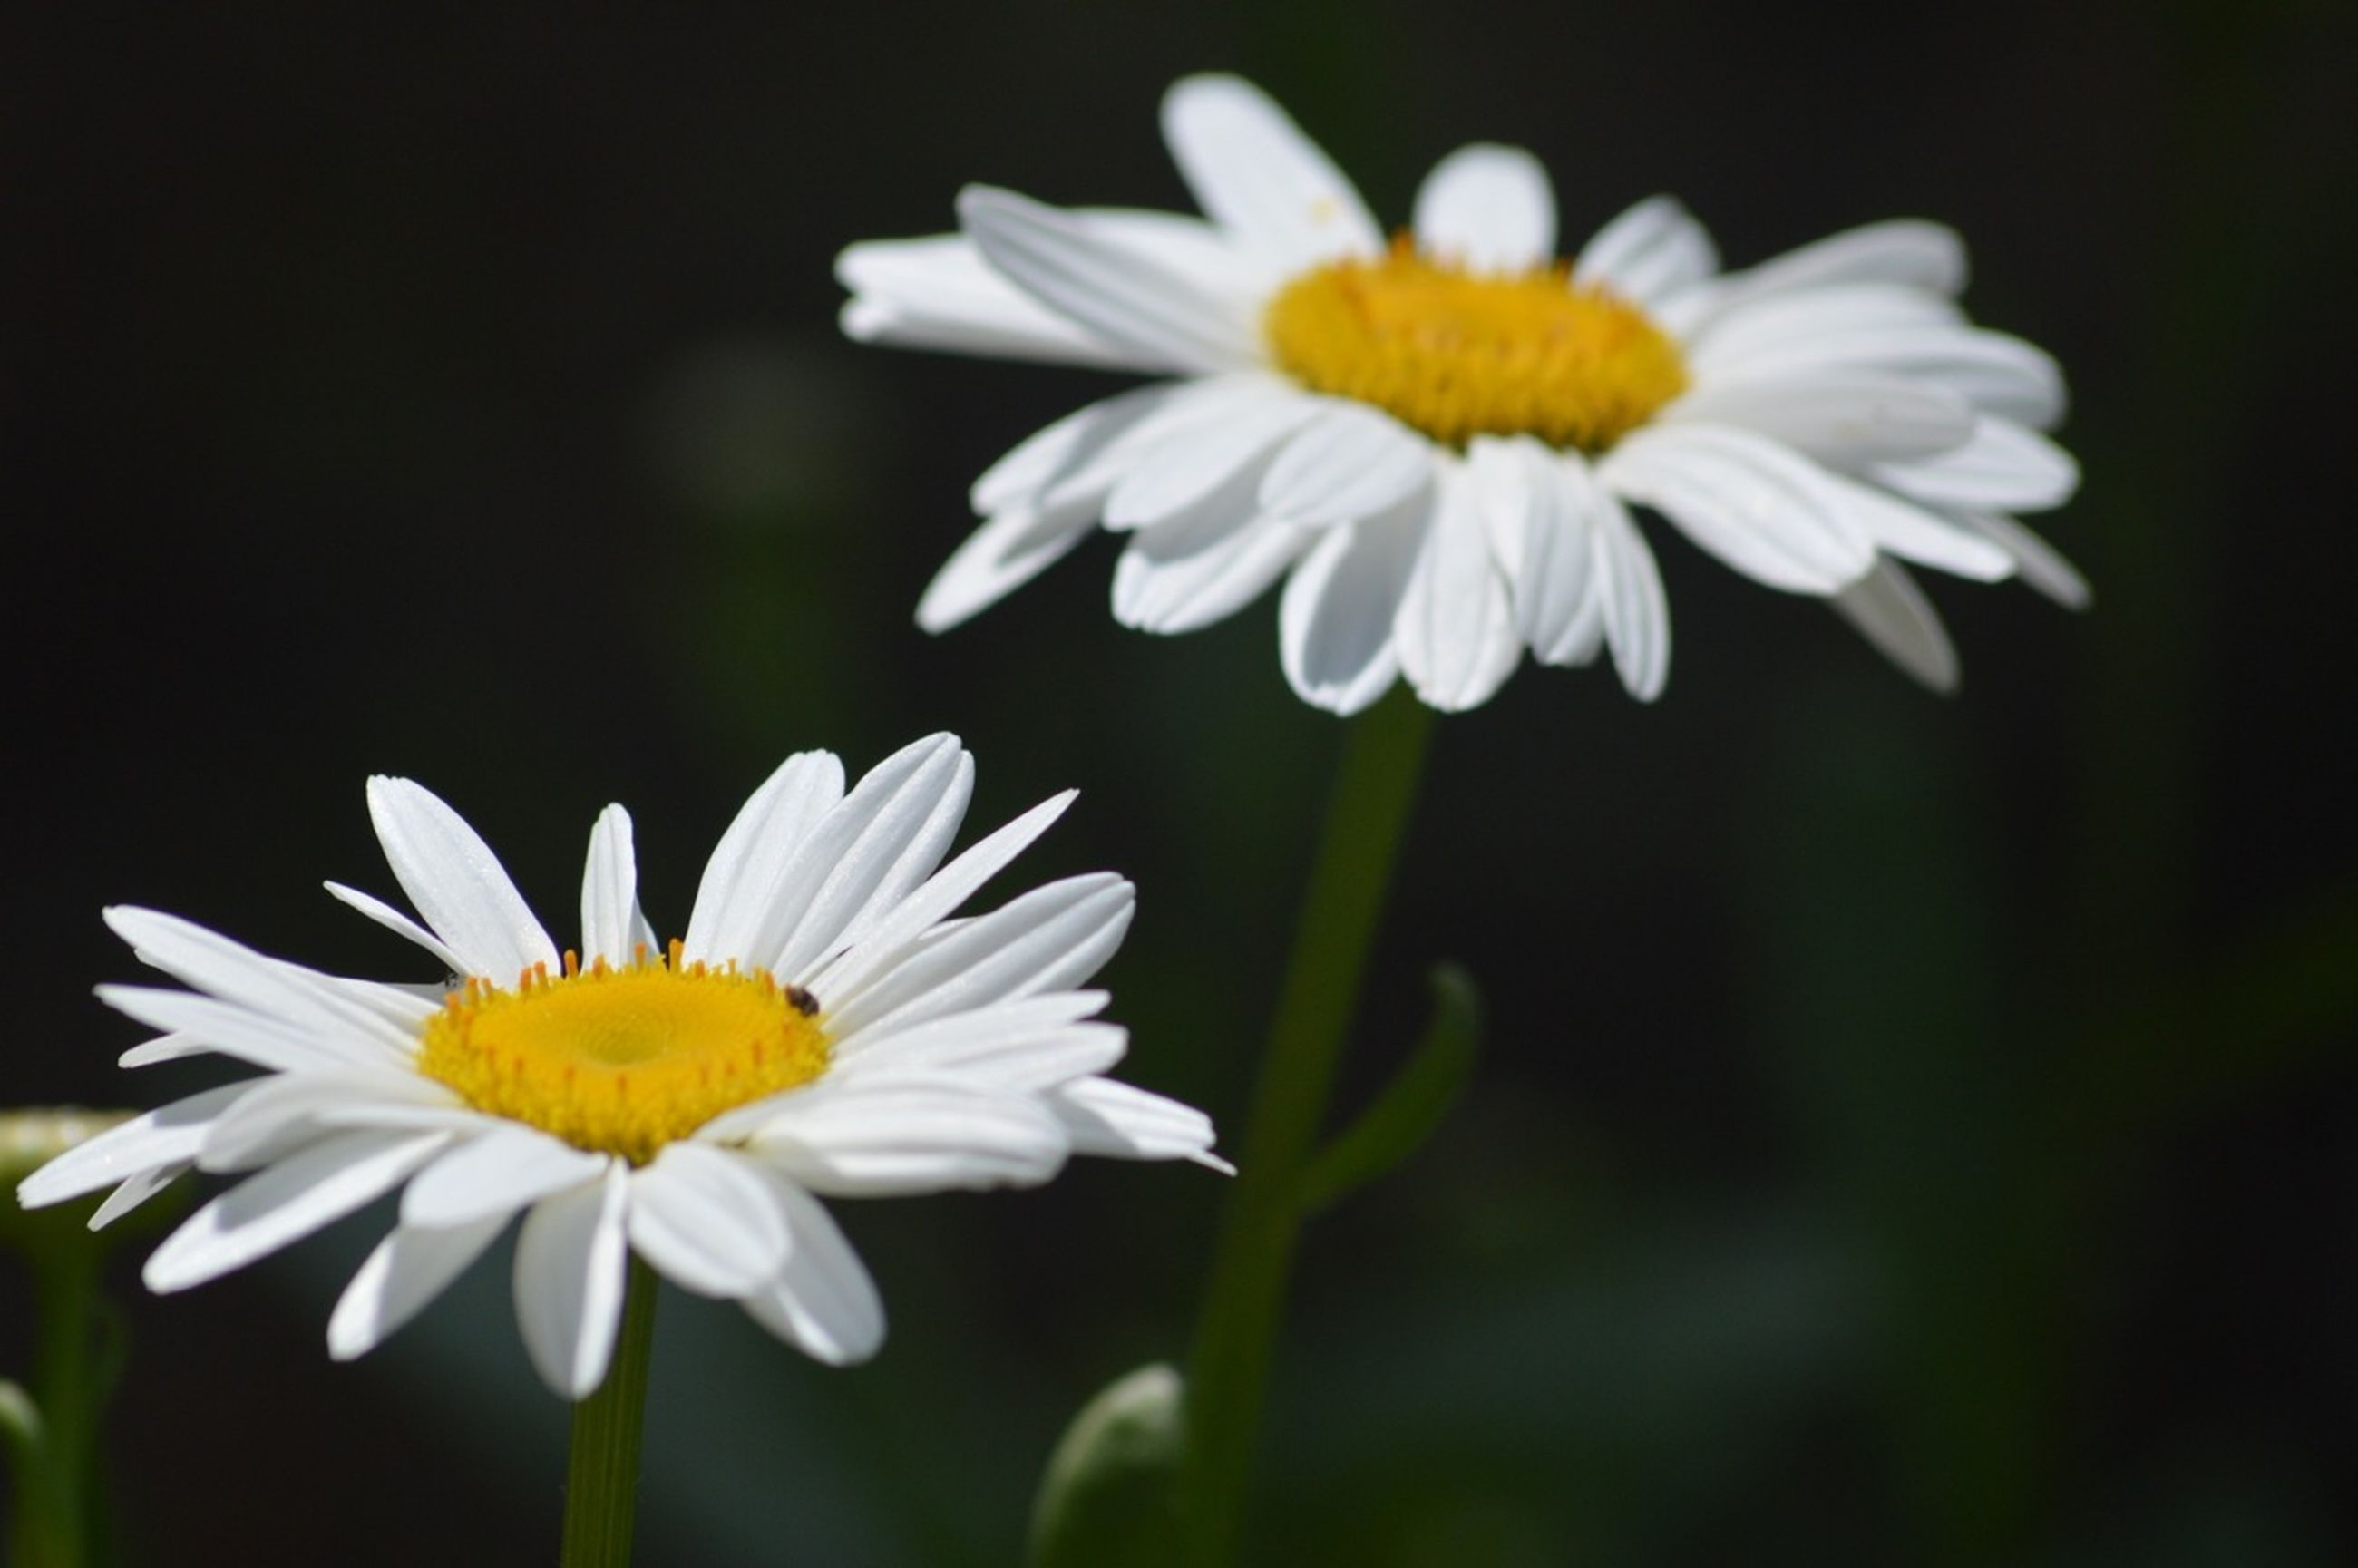 flower, petal, freshness, fragility, flower head, white color, growth, beauty in nature, daisy, focus on foreground, yellow, close-up, blooming, nature, pollen, plant, white, stem, in bloom, blossom